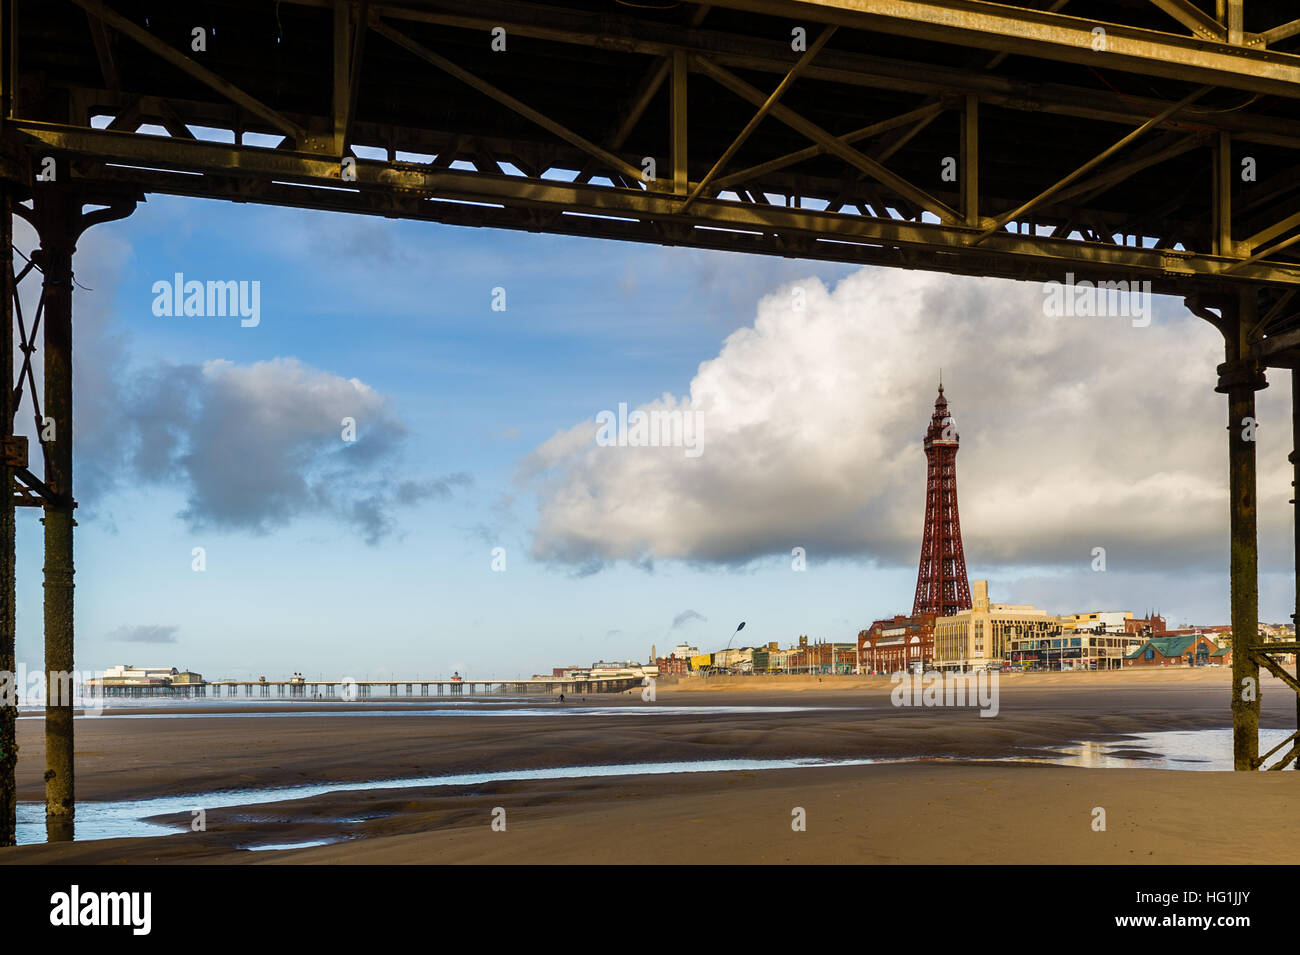 blackpool-tower-is-pictured-from-under-c